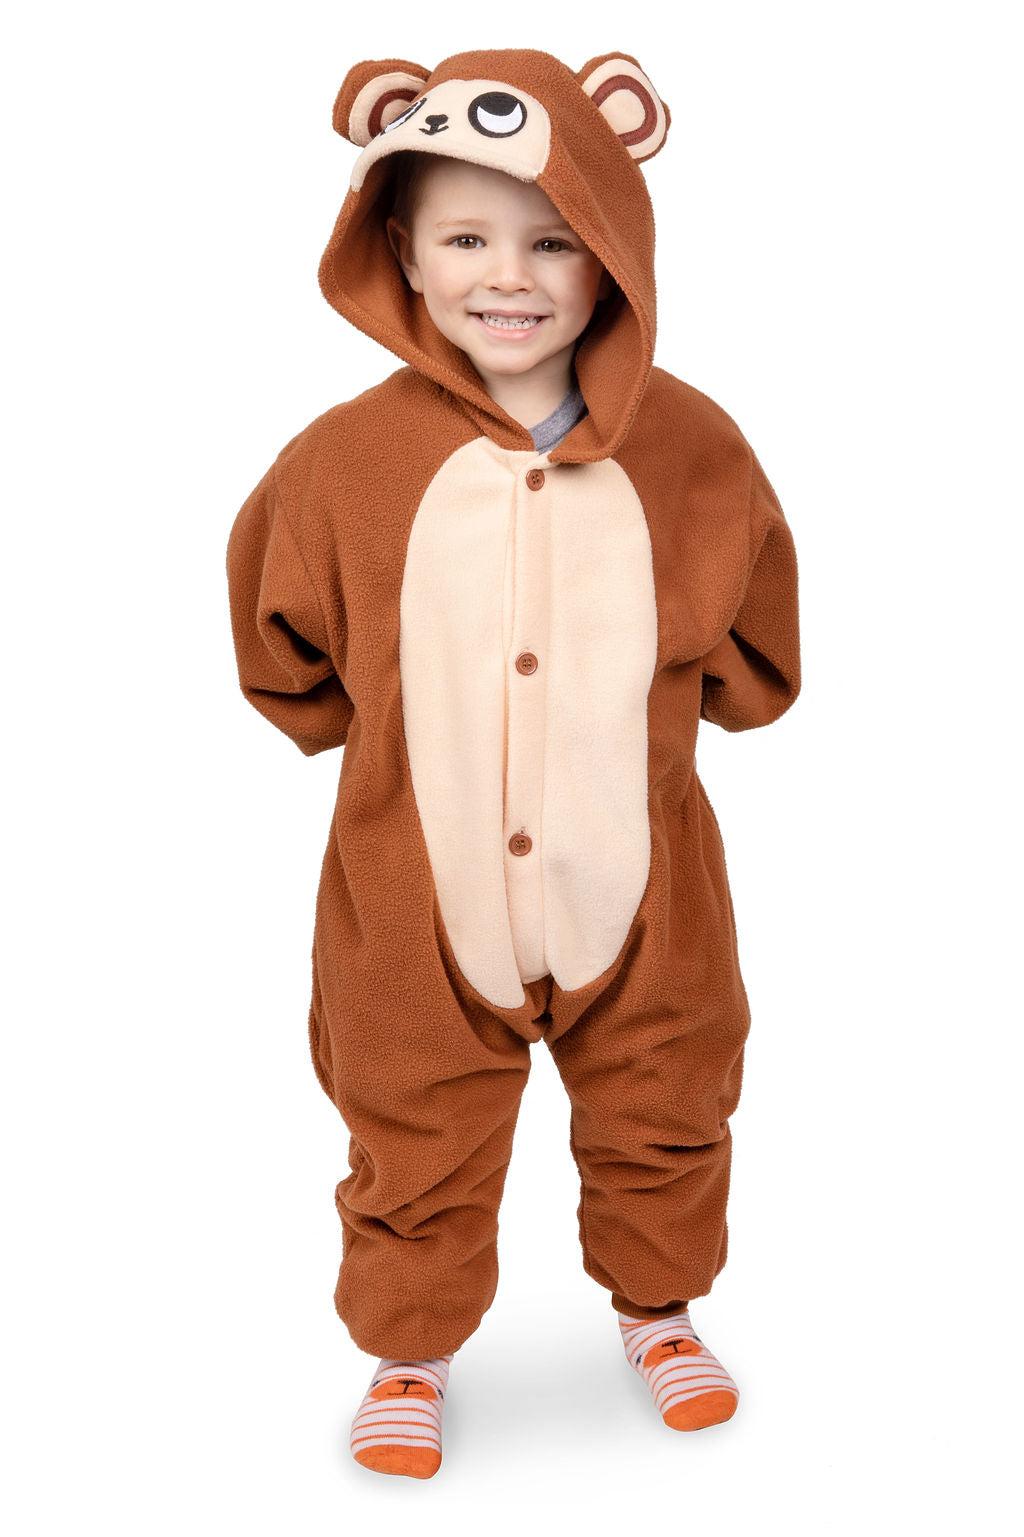 Kids Onesie - Monkey